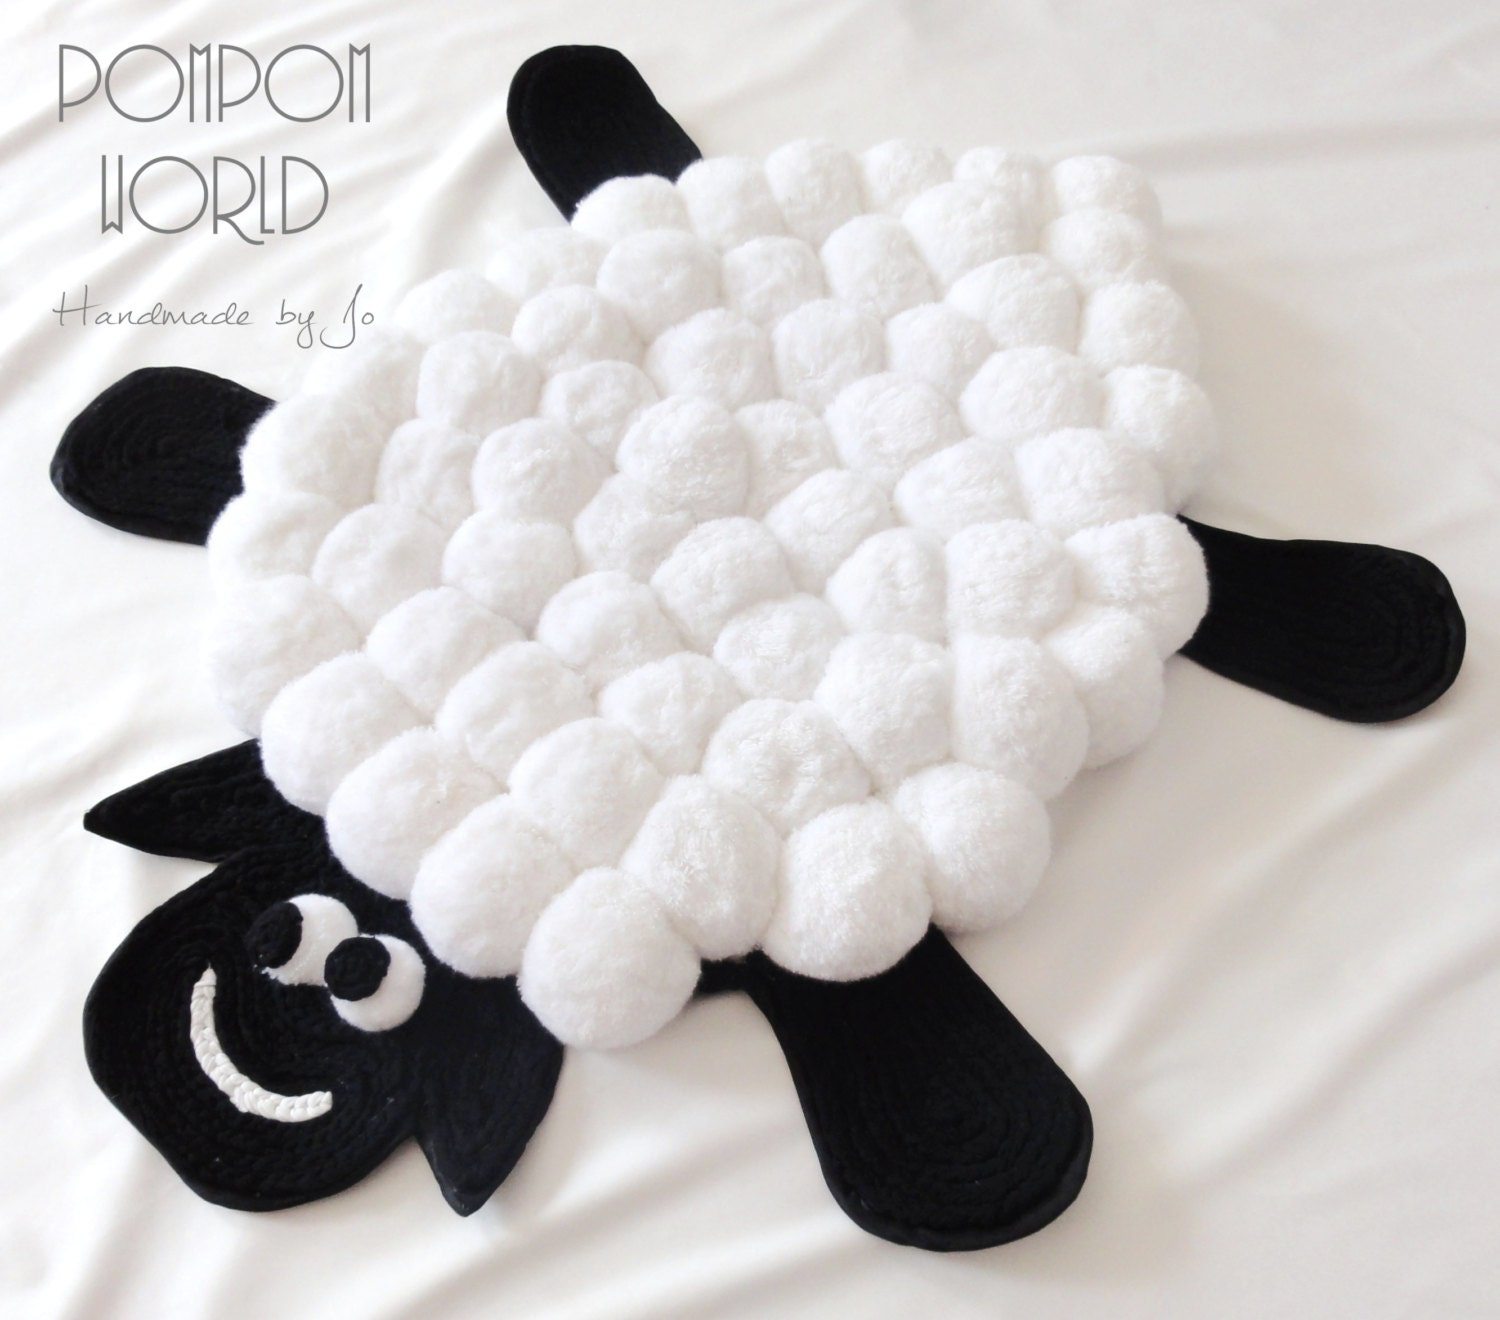 kids rug sheep pom pom rug pom pom sheep by pompommyworld. Black Bedroom Furniture Sets. Home Design Ideas